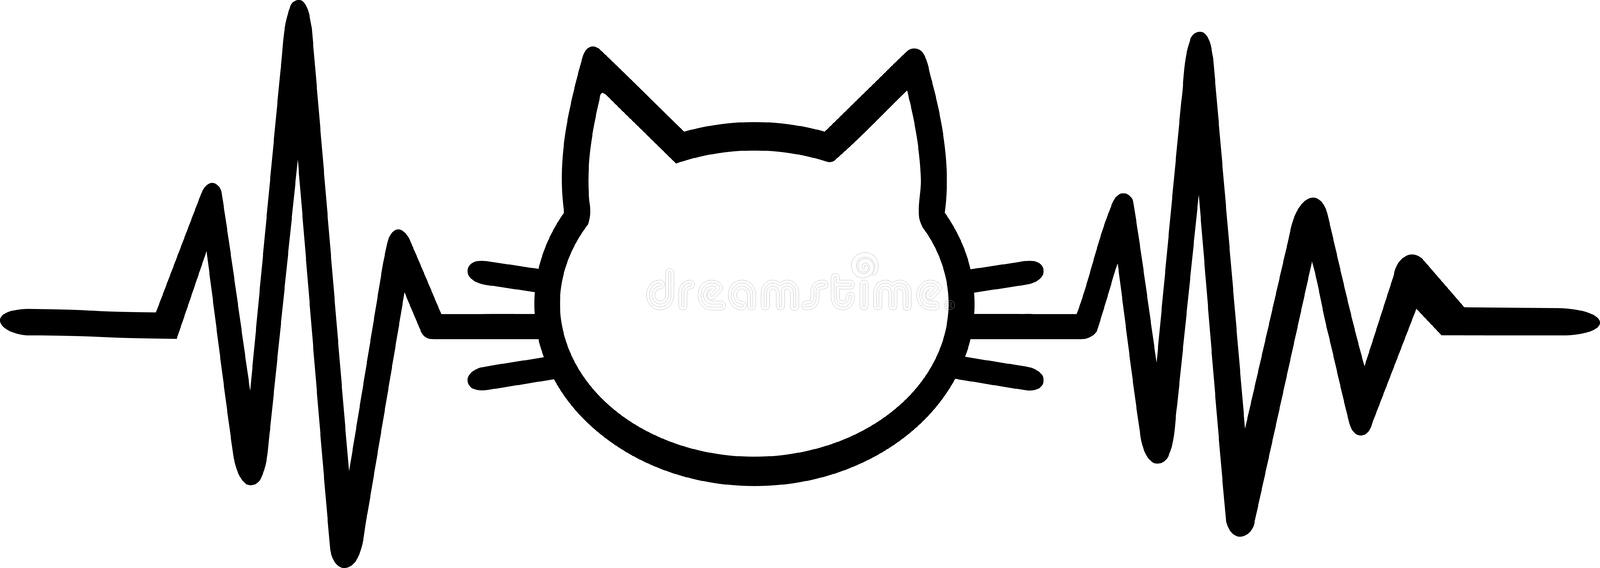 Cat heartbeat line with cat silhouette. Heartbeat pulse line with cat silhouette black stock illustration